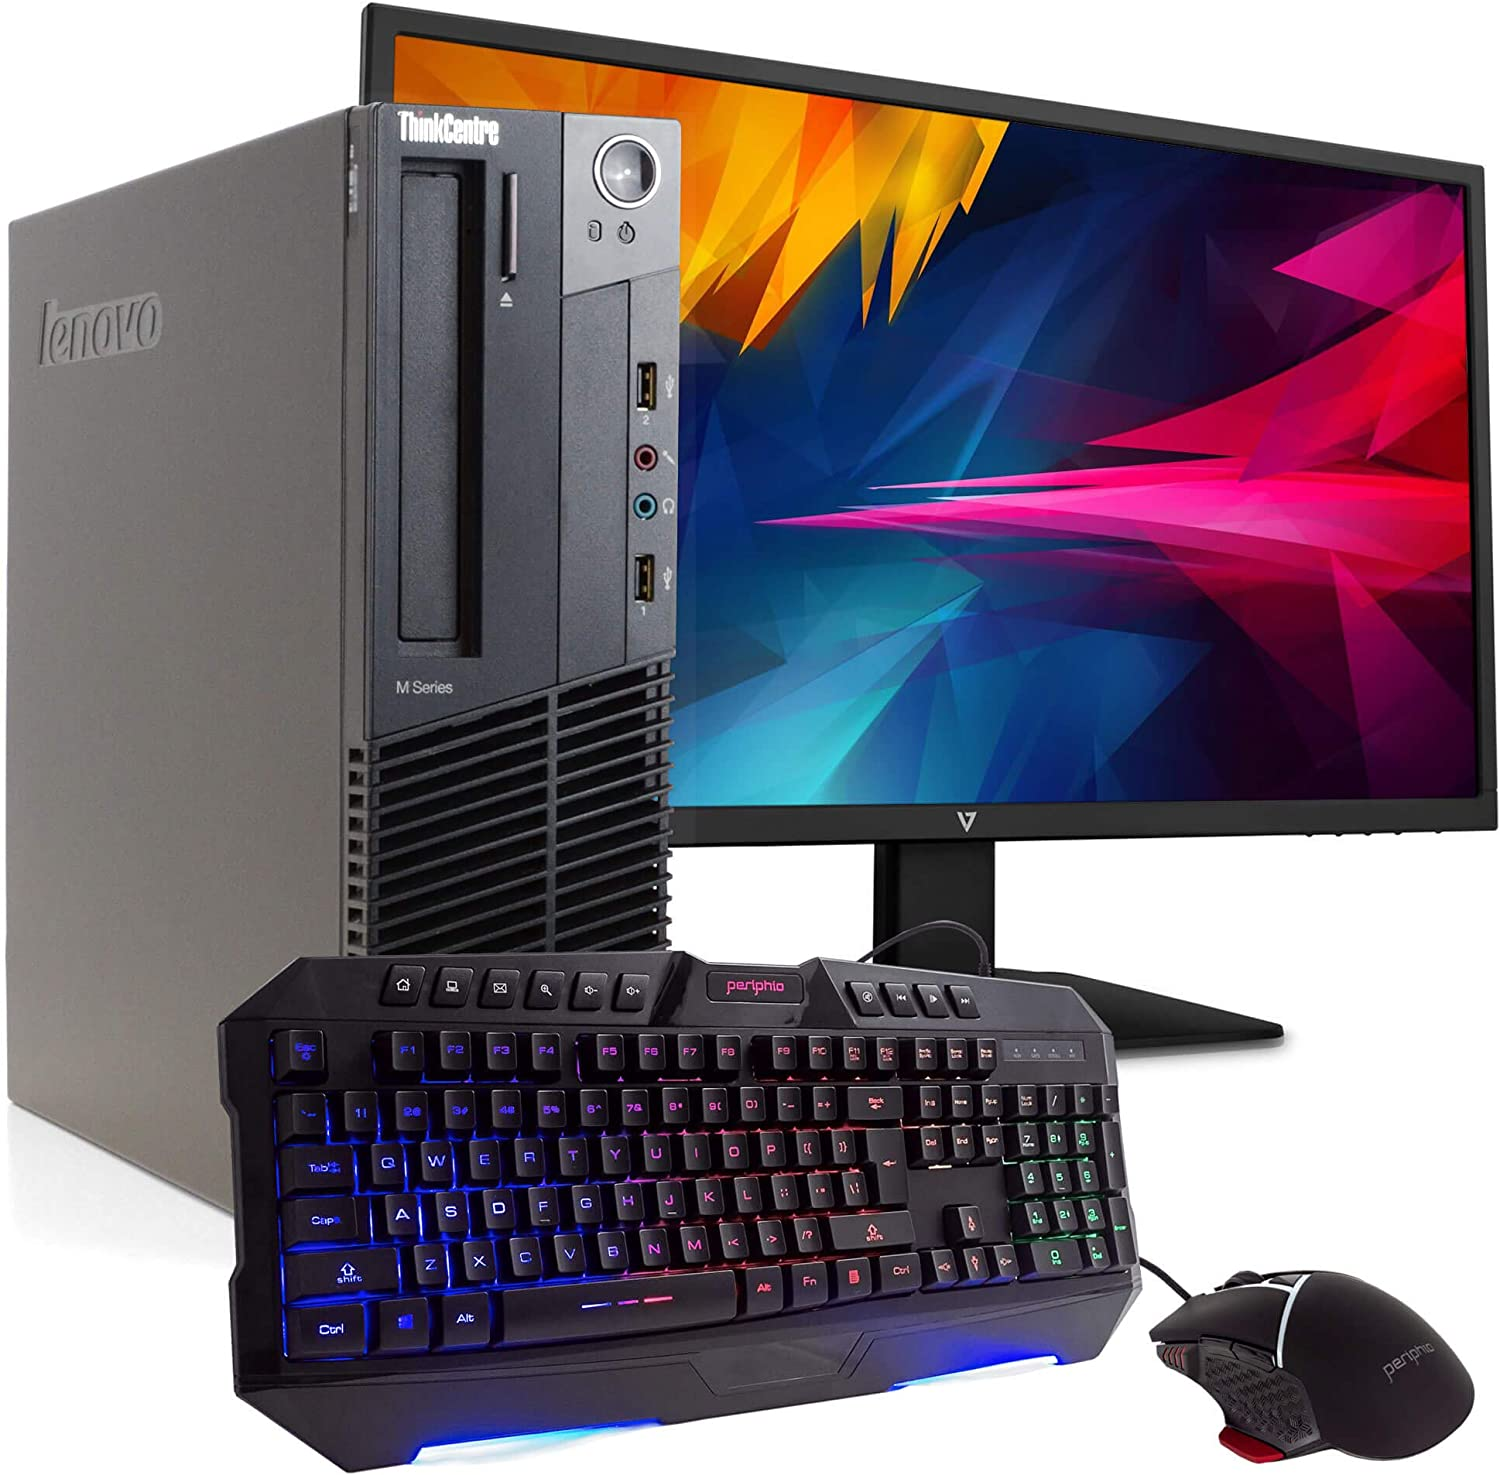 "Lenovo ThinkCentre M92P PC Desktop Computer, Intel i5-3470 3.2GHz, 8GB RAM, 500GB HDD, Windows 10 Pro, New 23.6"" FHD V7 LED Monitor, New Periphio Keyboard & Mouse, New 16GB Flash Drive, WiFi (Renewed)"